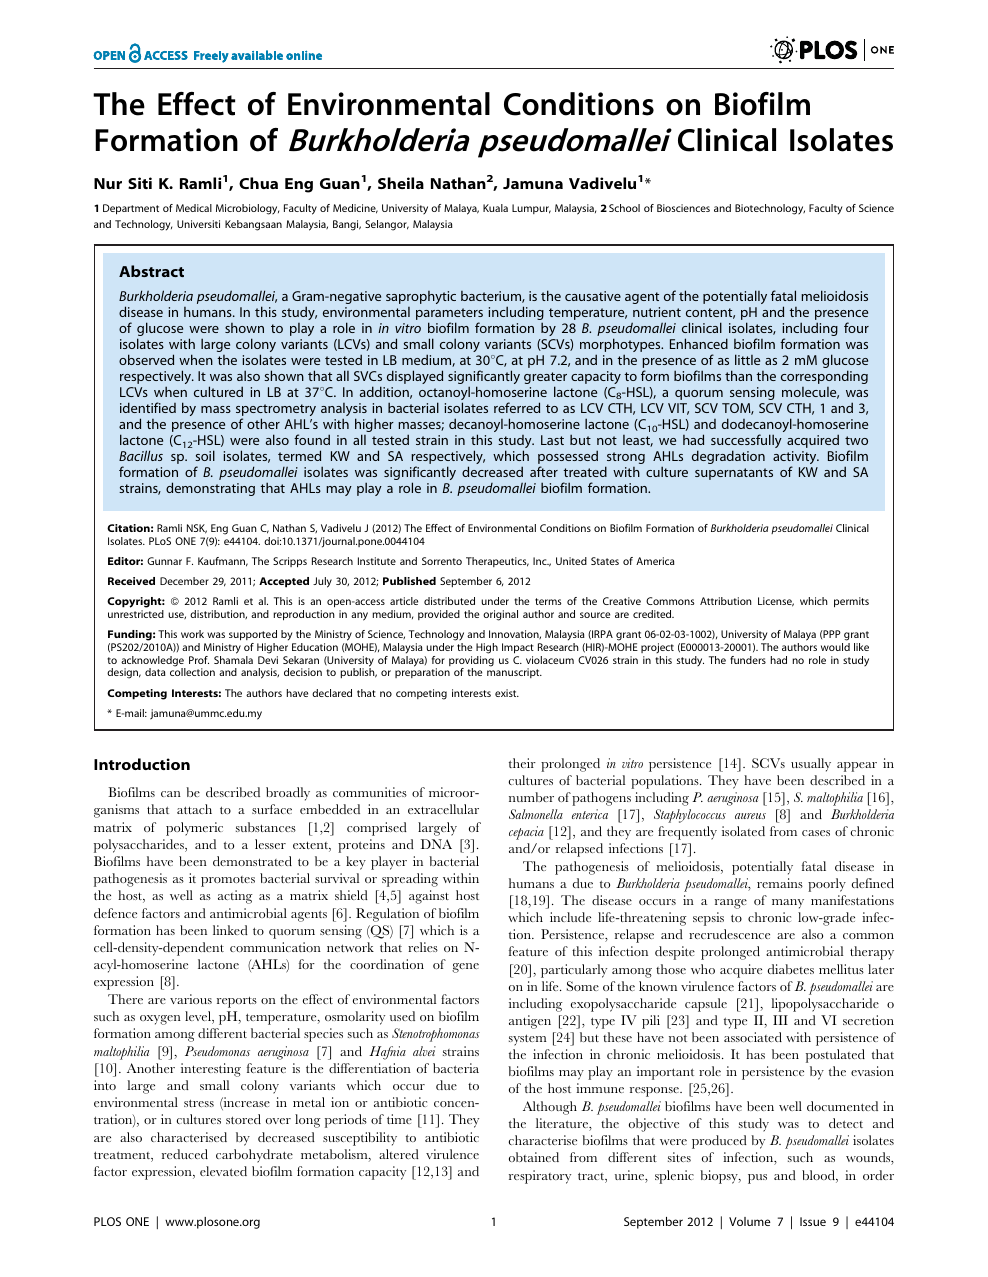 The Effect of Environmental Conditions on Biofilm Formation